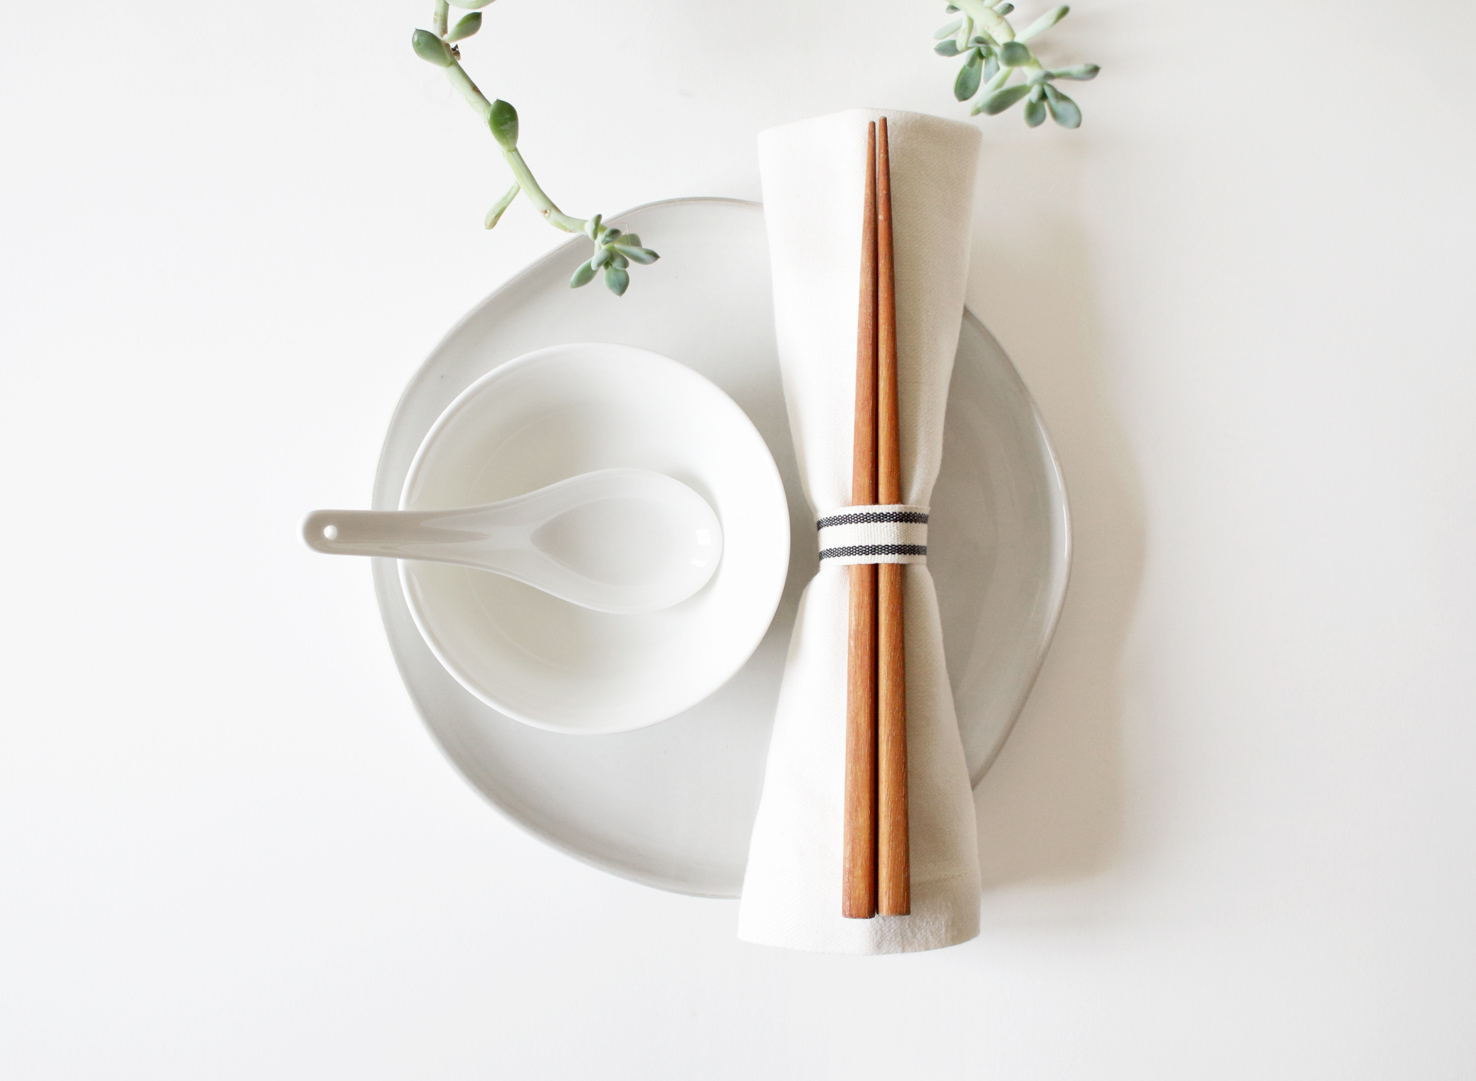 Clean And Chic Table Settings For Any Cuisine